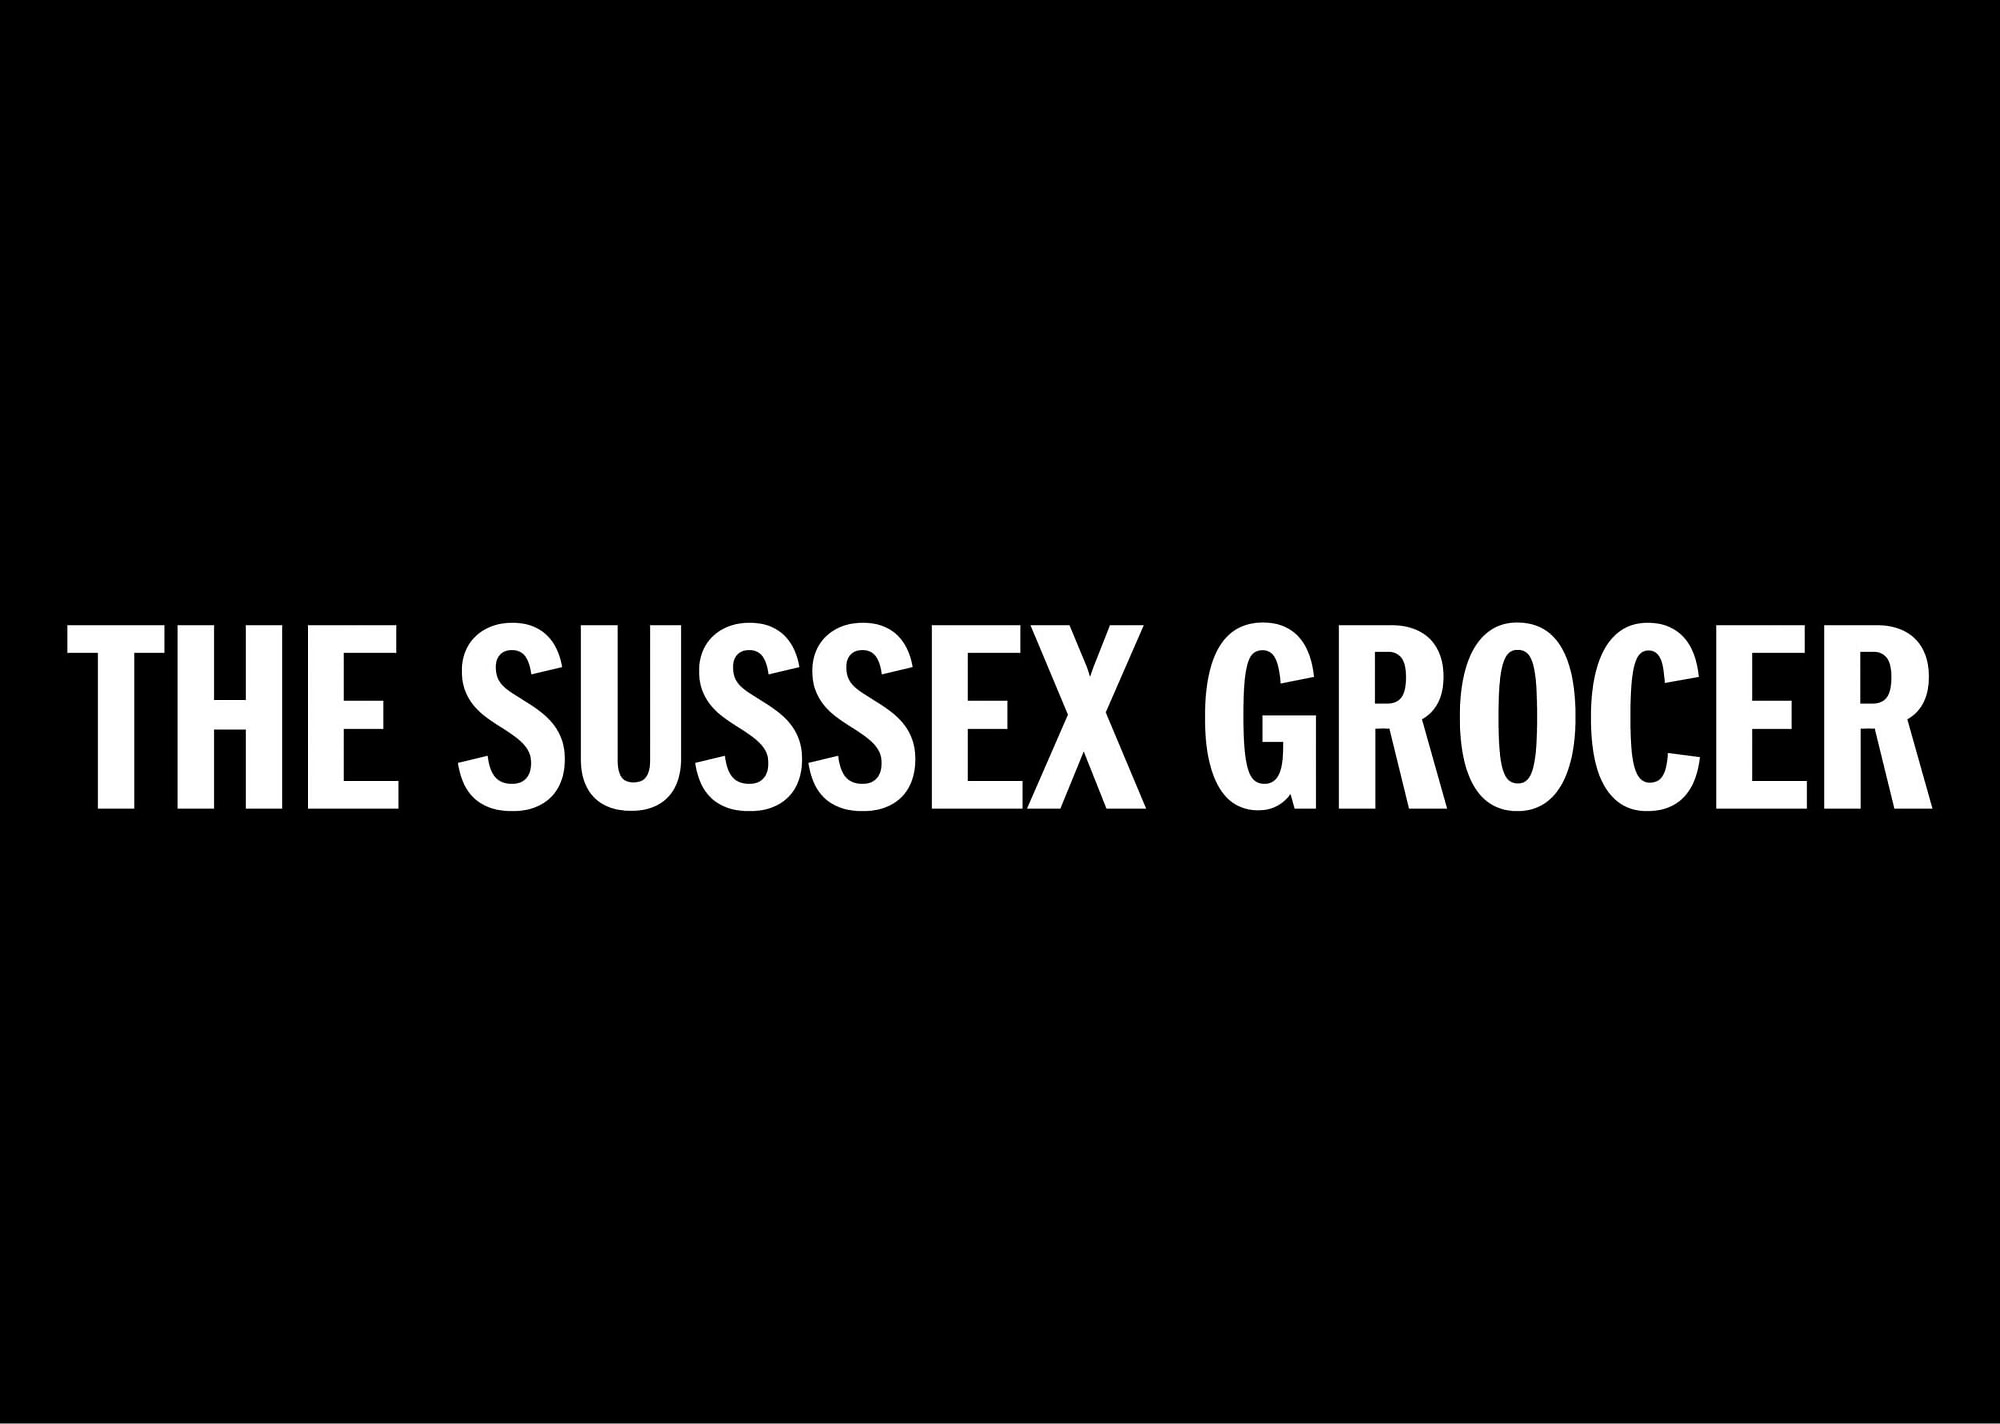 The Sussex Grocer logo